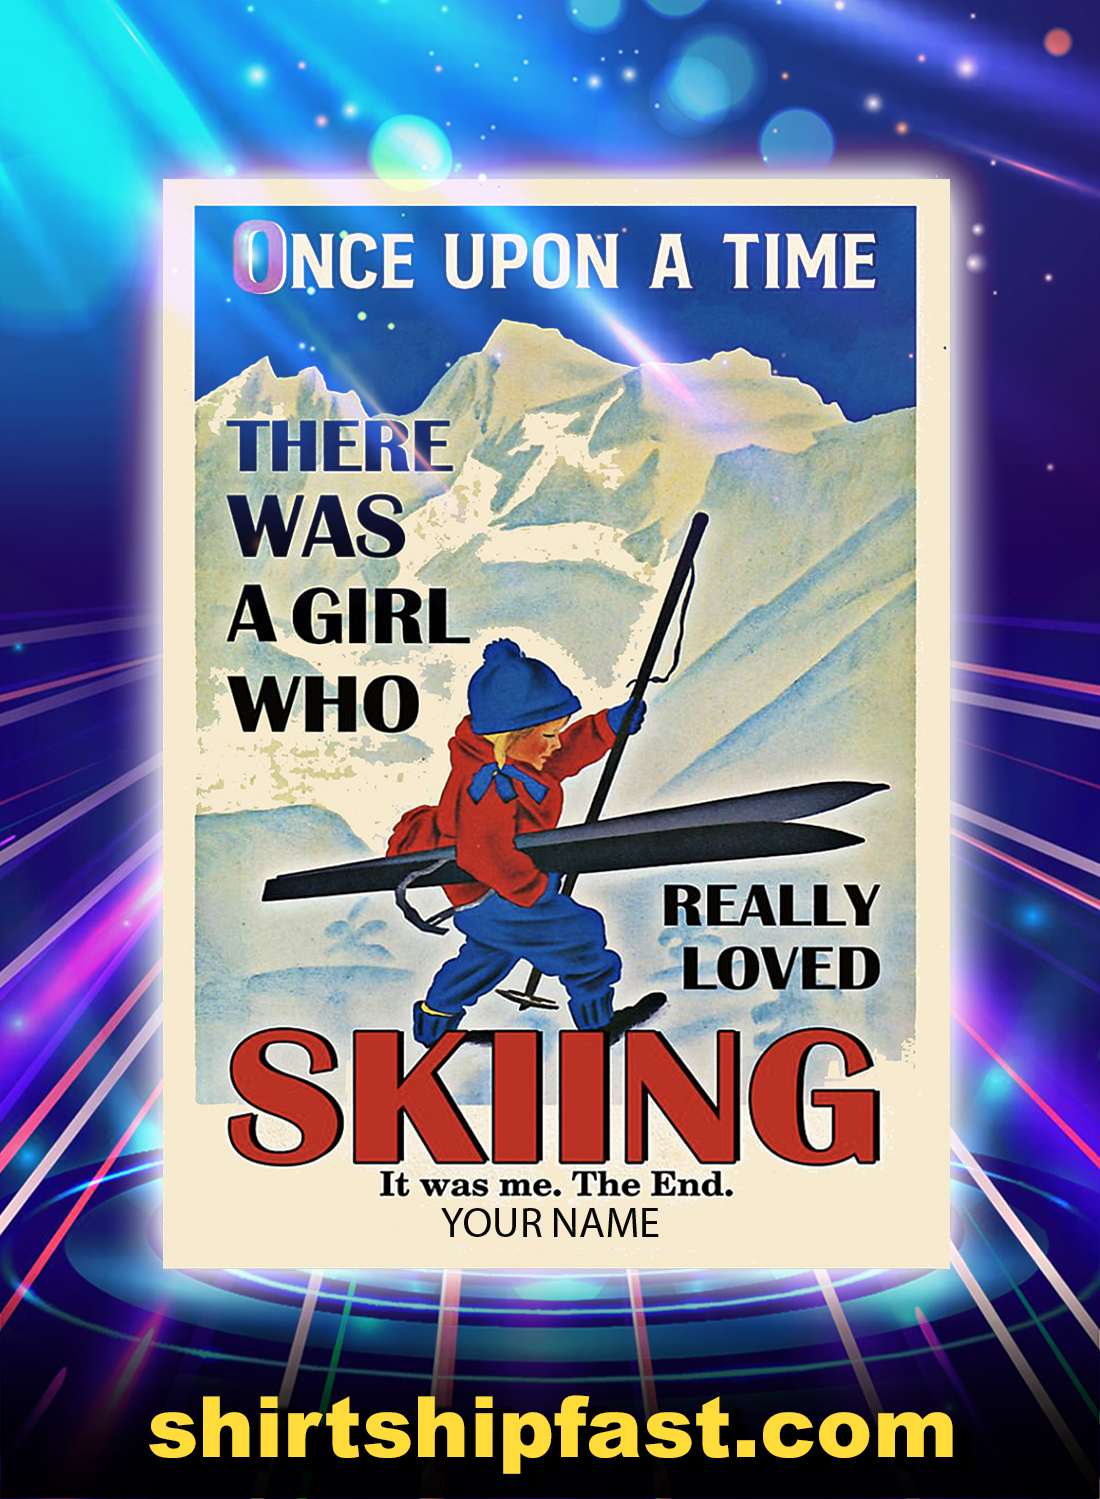 Personalized custom name Once upon a time there was a girl who really loved skiing poster - A4